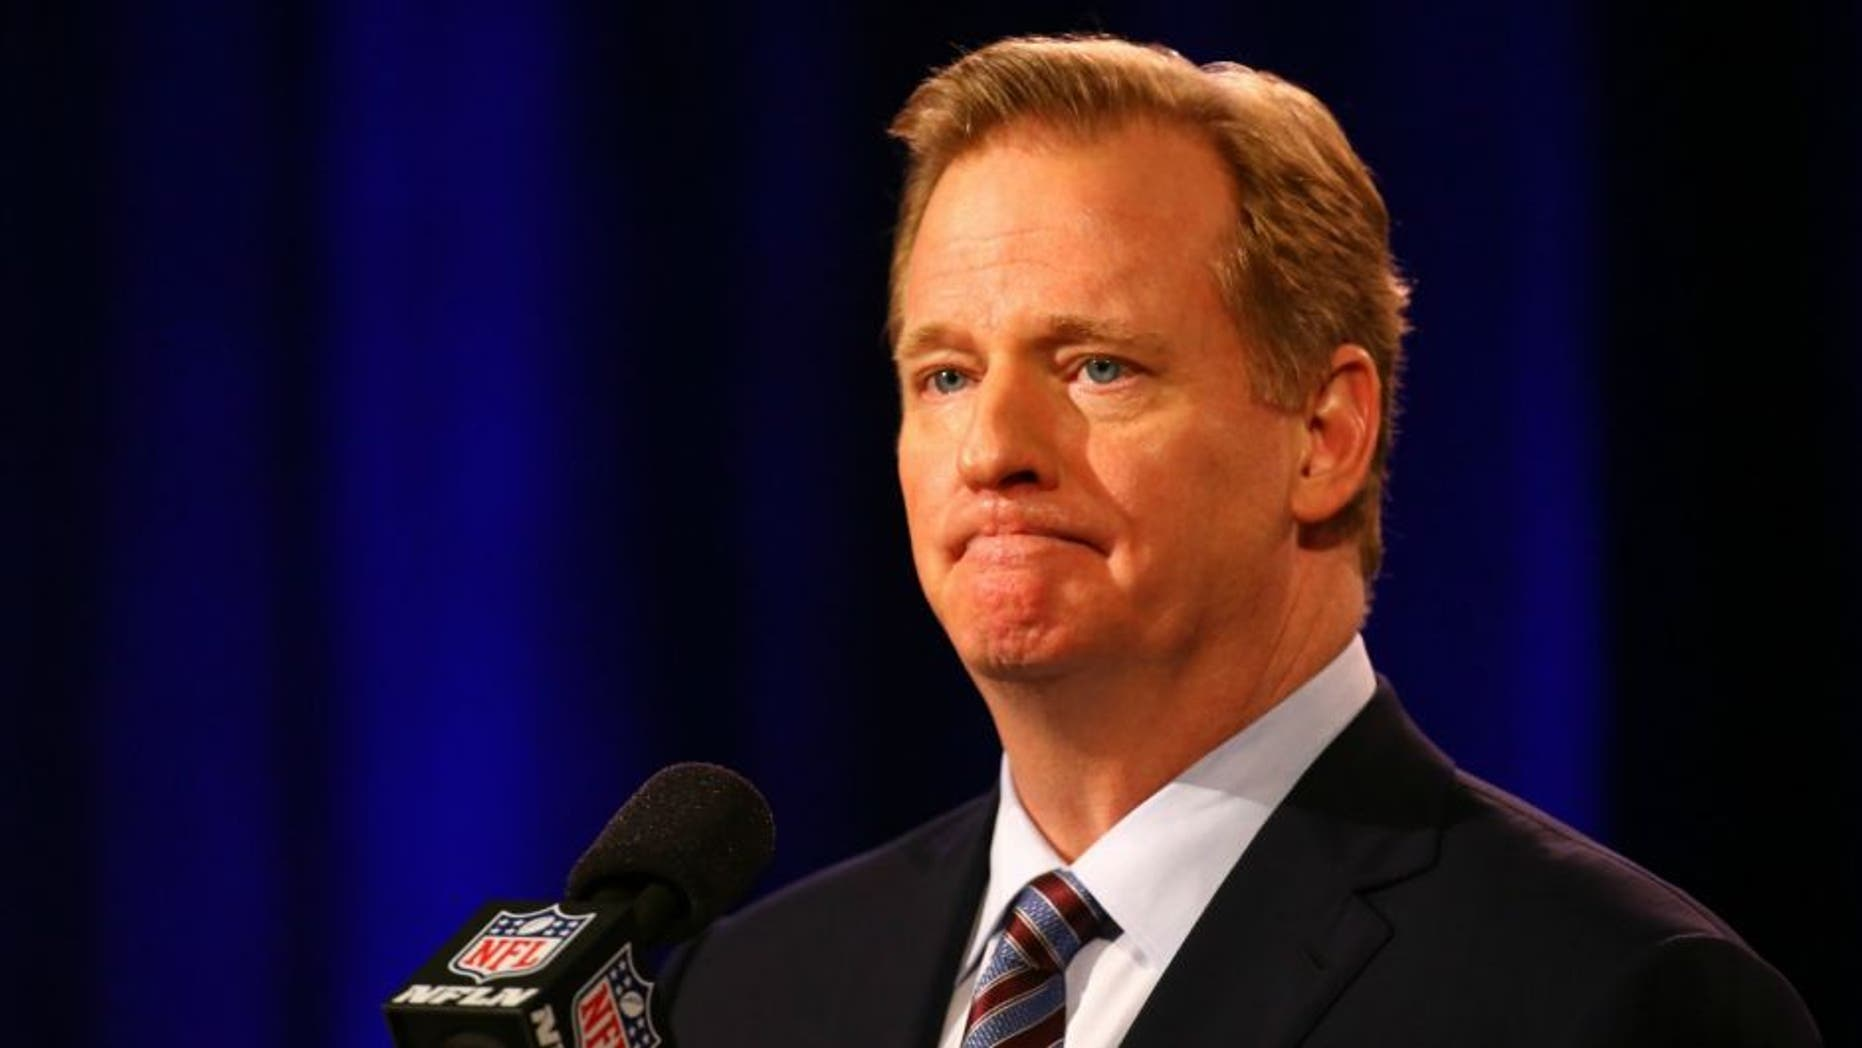 NFL Commissioner Roger Goodell speaks during a press conference prior to the upcoming Super Bowl XLIX at Phoenix Convention Center on January 30, 2015 in Phoenix, Arizona.